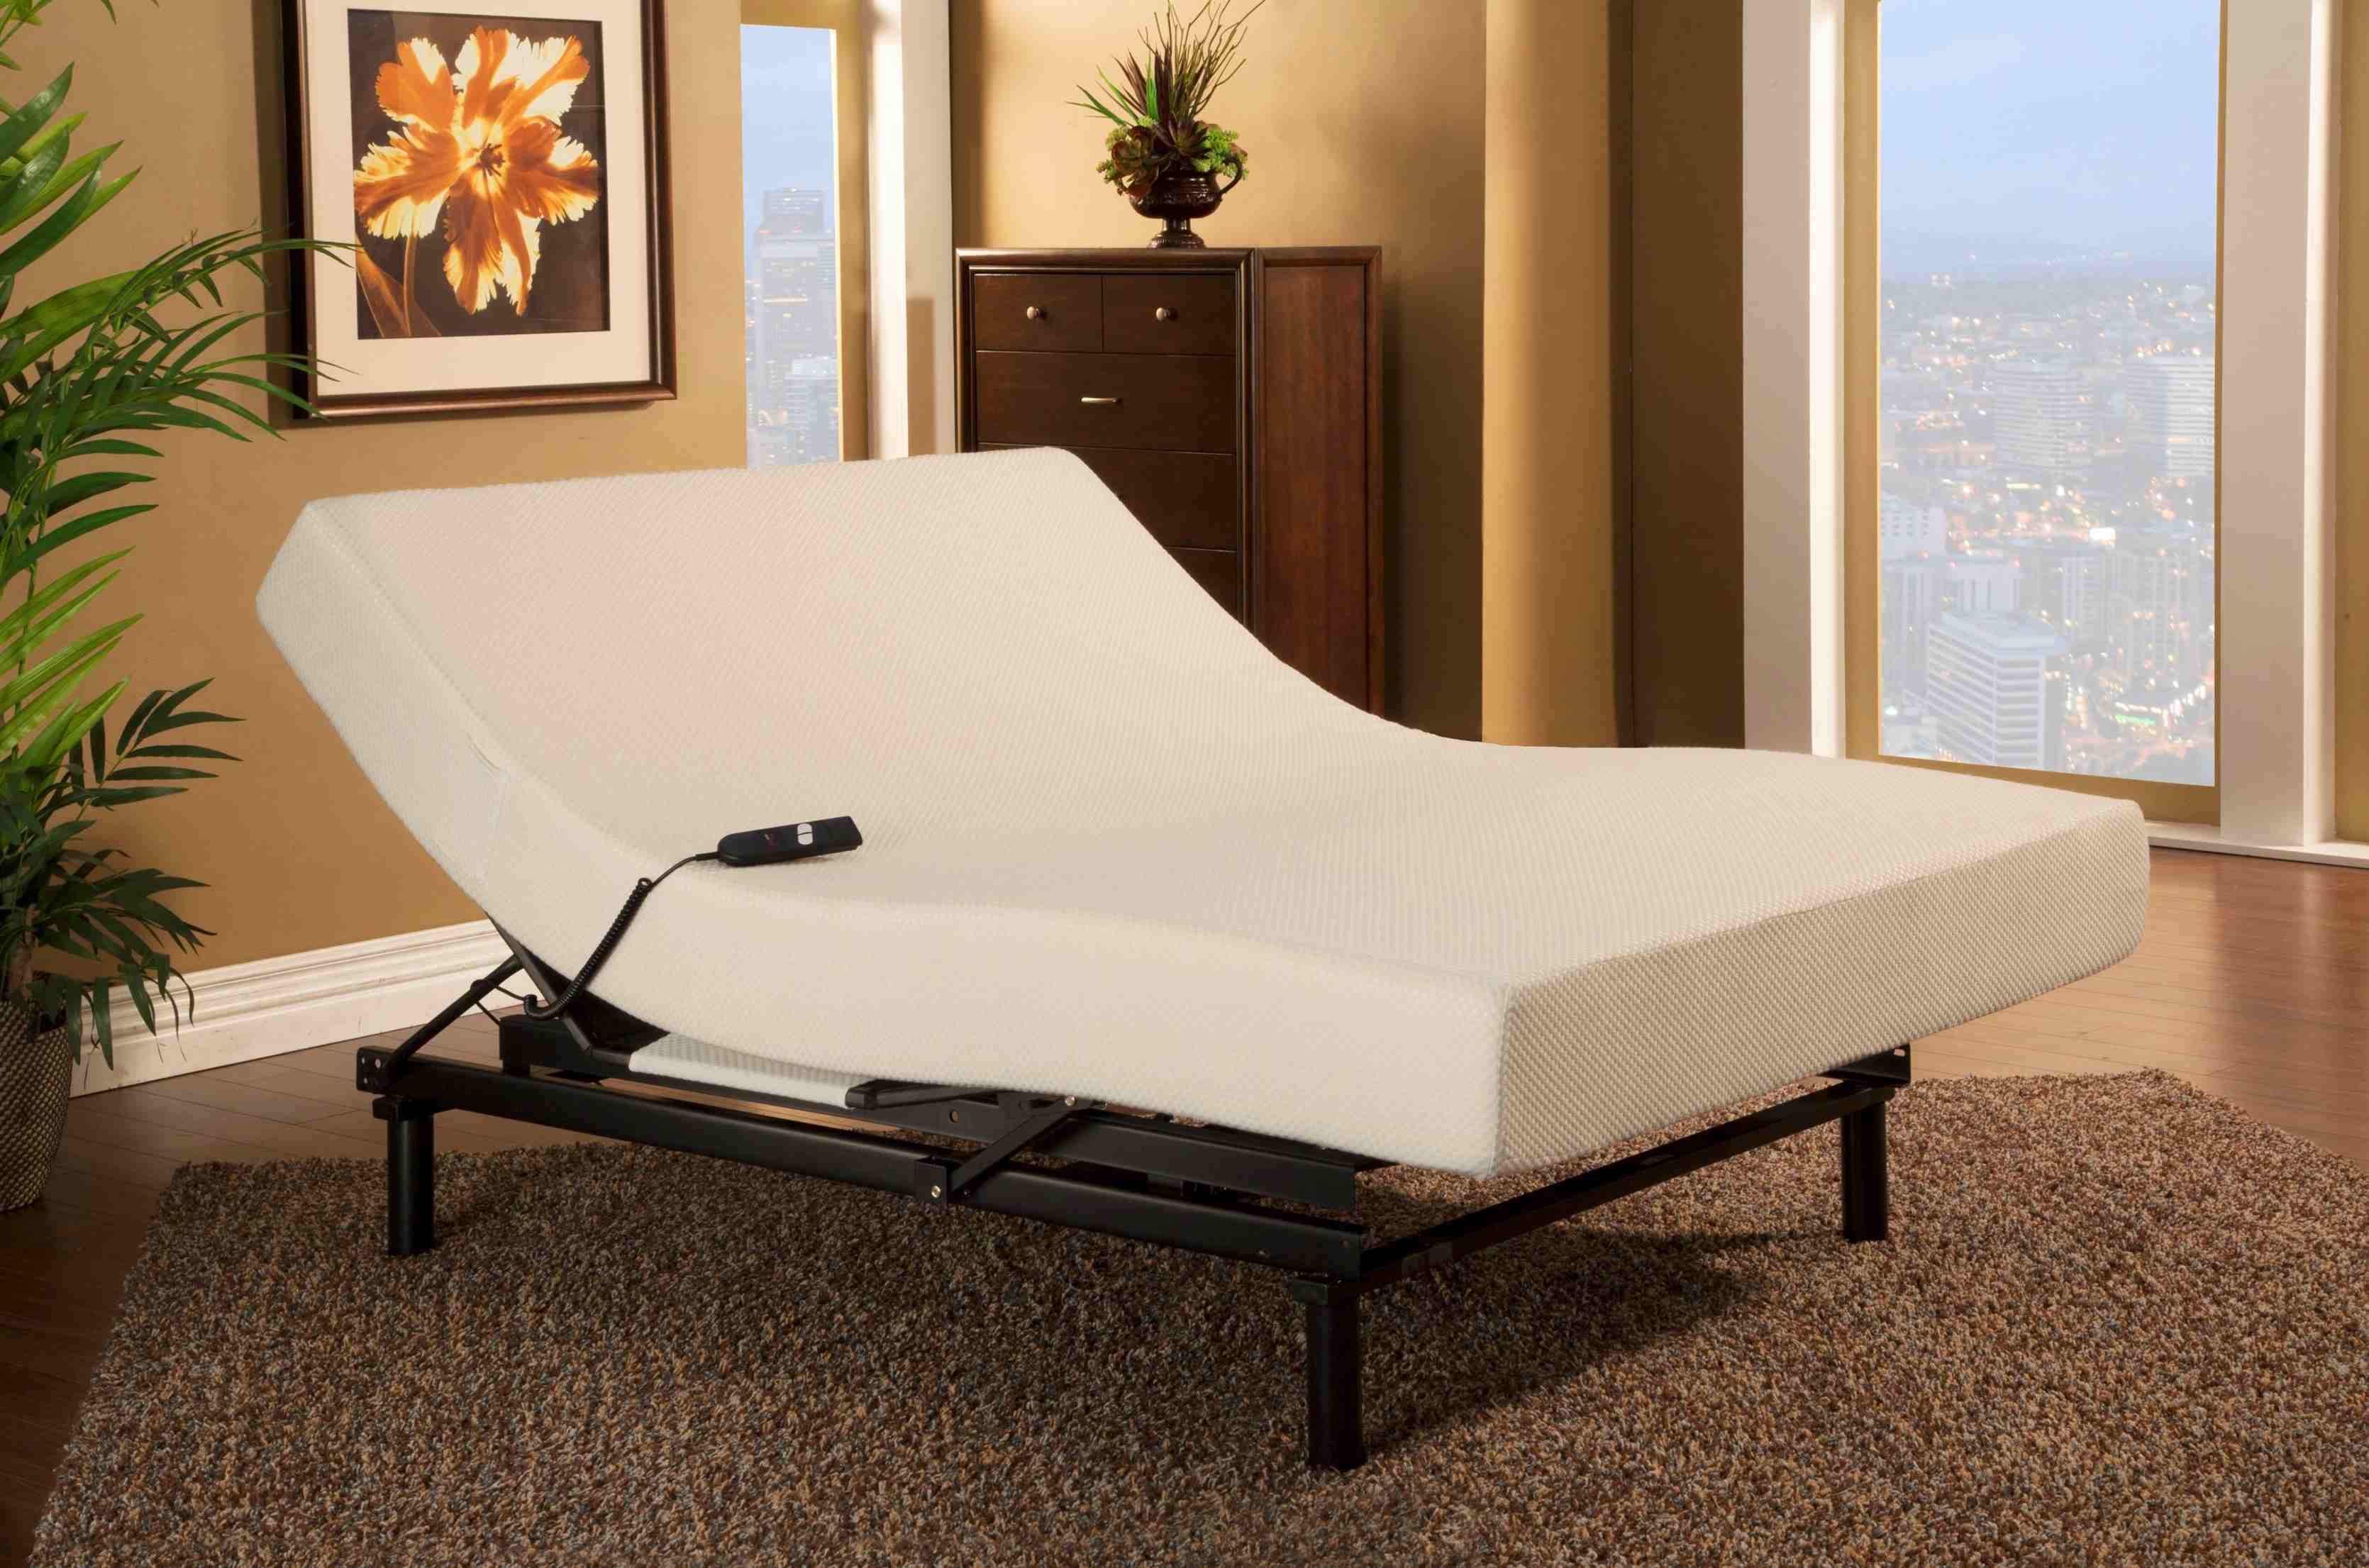 better sleeping life of adjustable bed in home